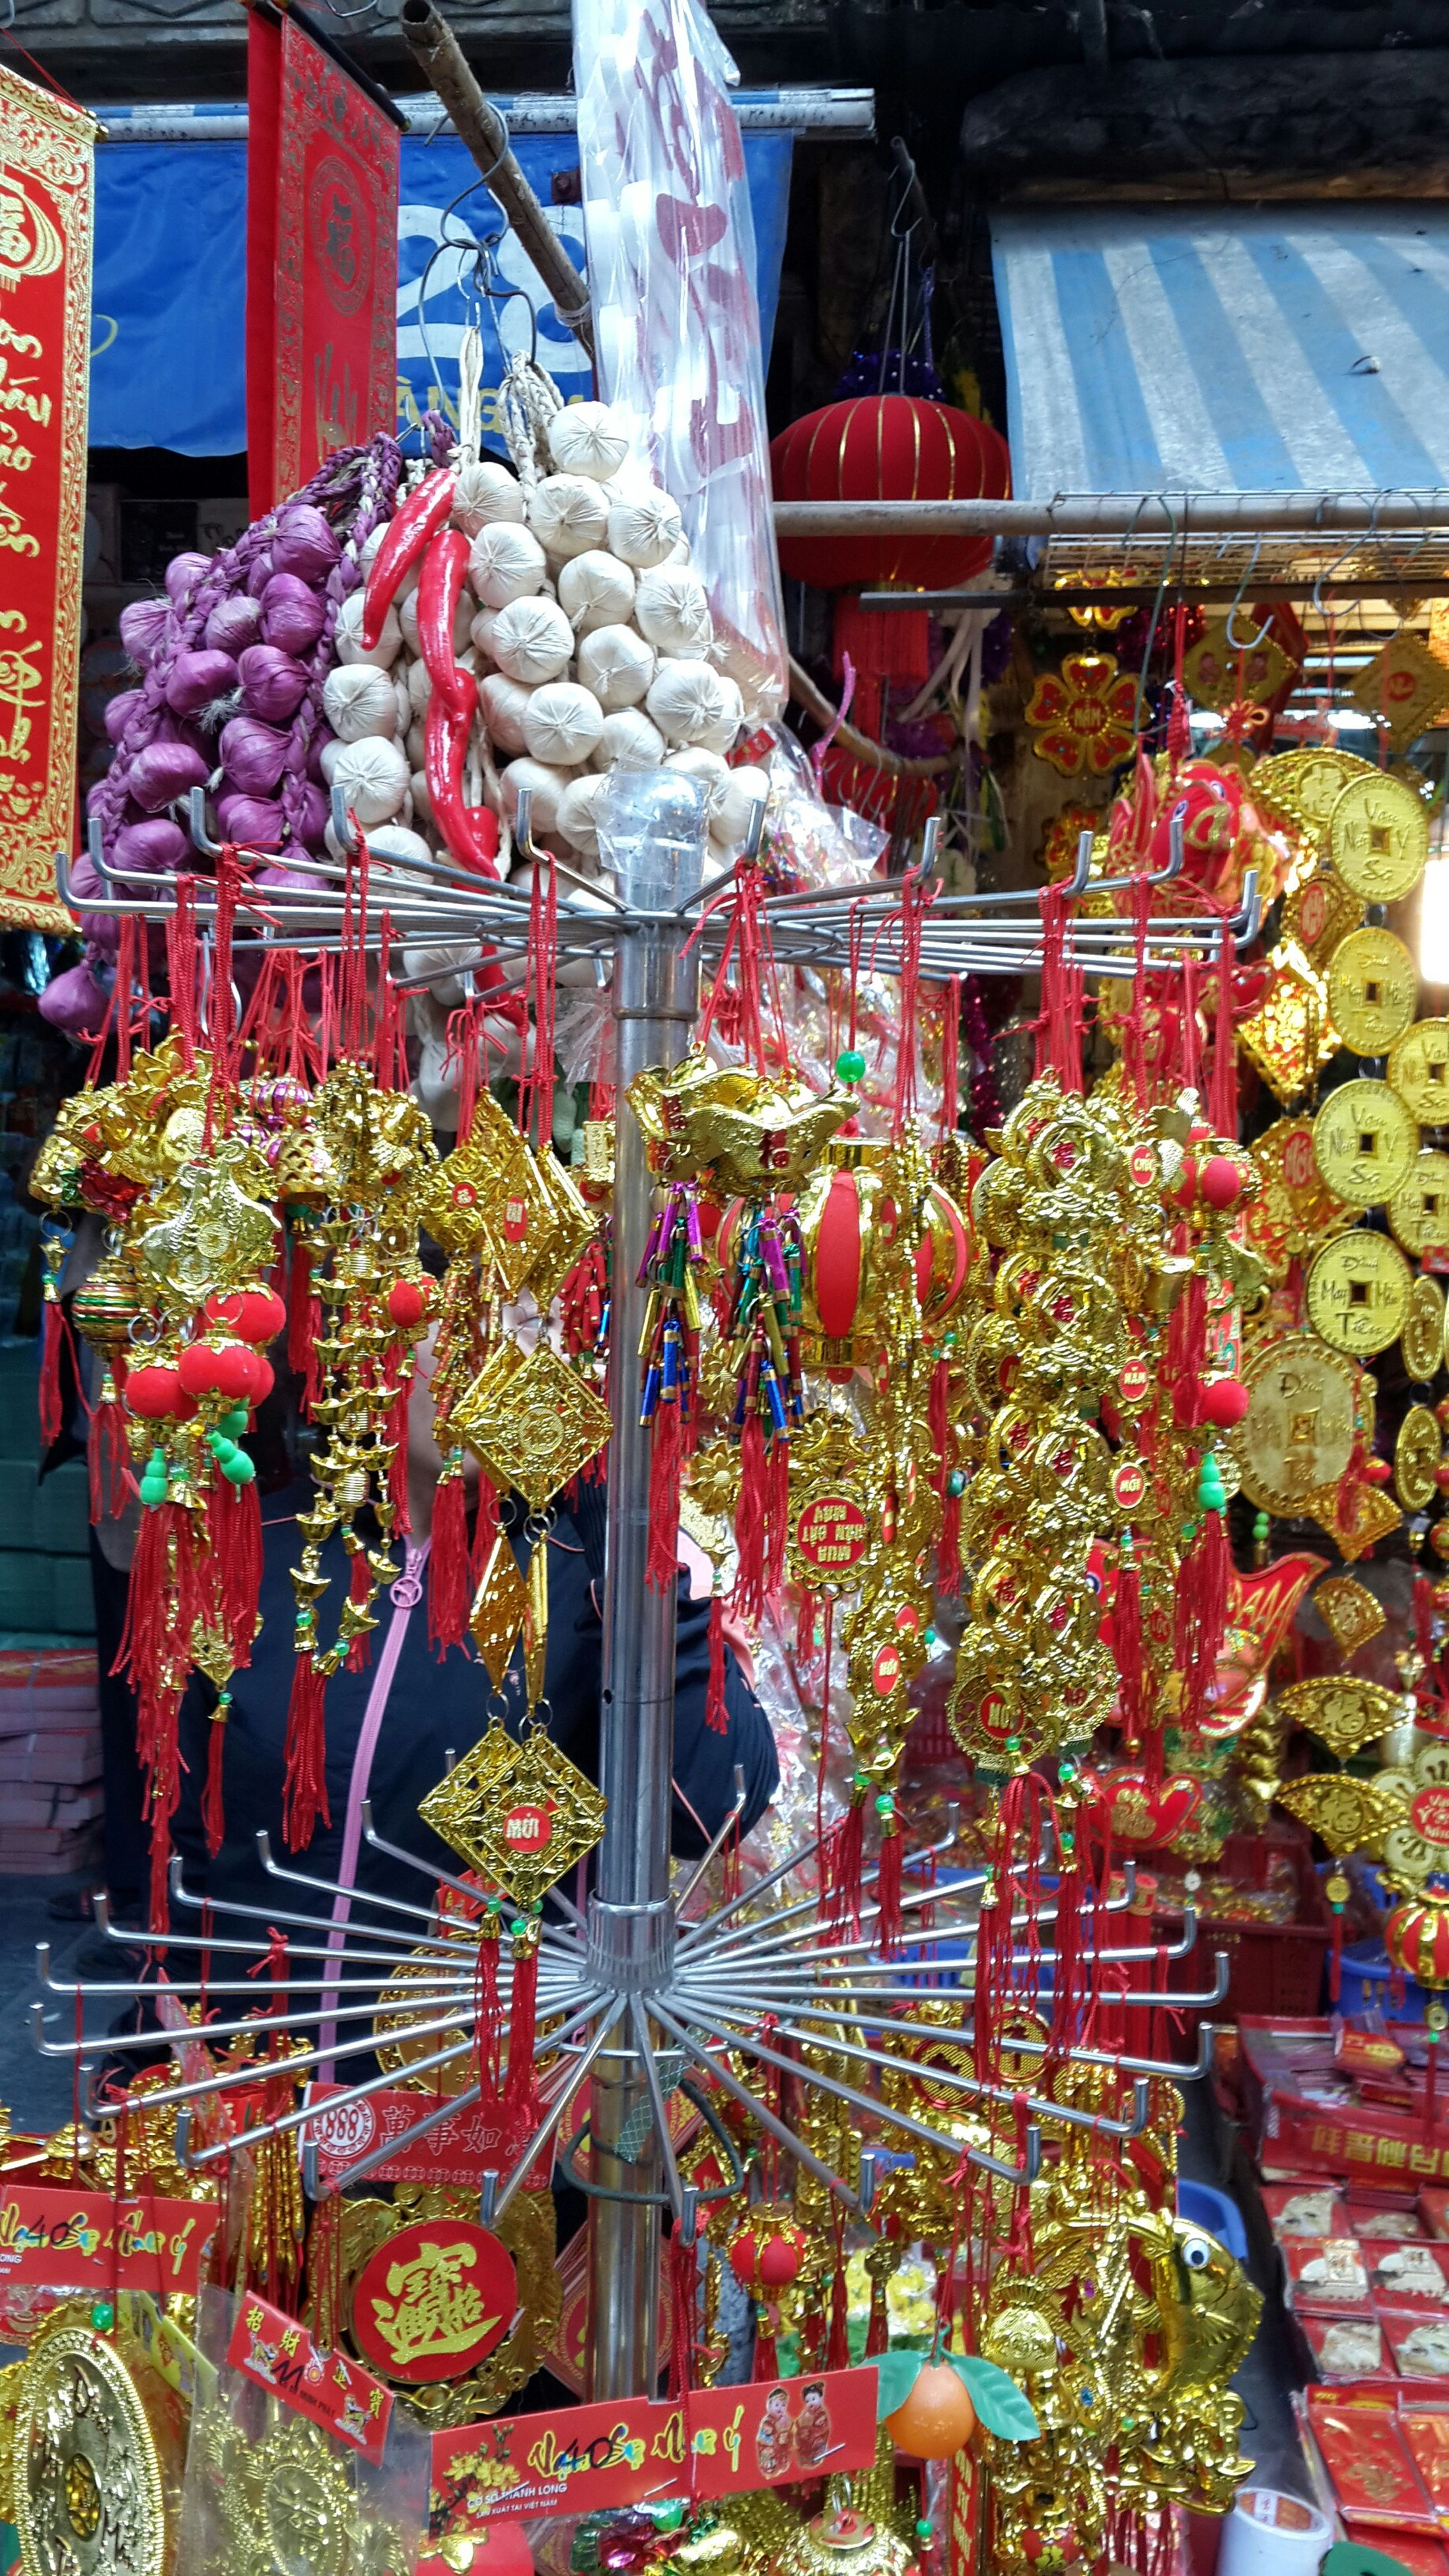 for sale, flower, retail, variation, choice, abundance, freshness, market, decoration, market stall, hanging, arrangement, large group of objects, multi colored, potted plant, plant, display, store, growth, collection